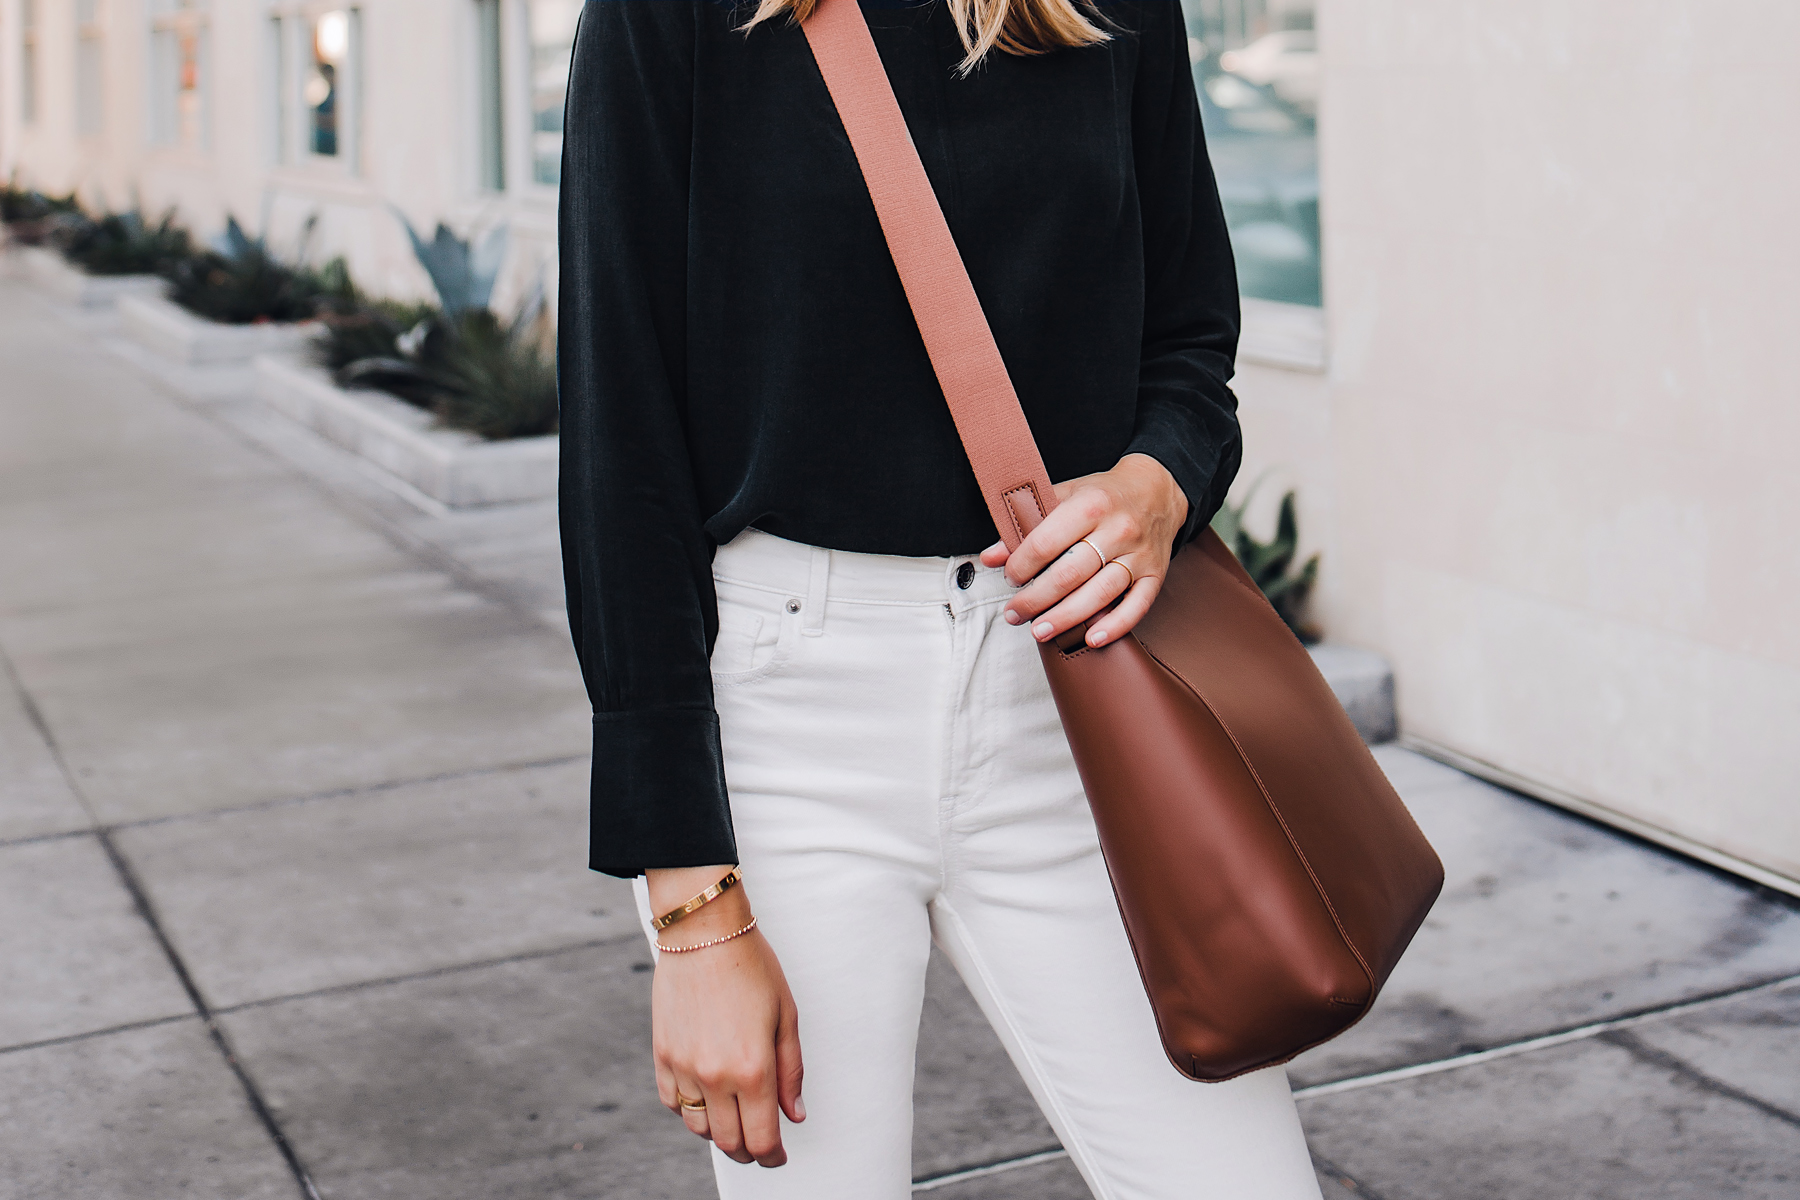 Woman Wearing Everlane Form Bag Brown Messenger Handbag Everlane Black Silk Long Sleeve Top Everlane White Jeans Fashion Jackson San Diego Fashion Blogger Street Style